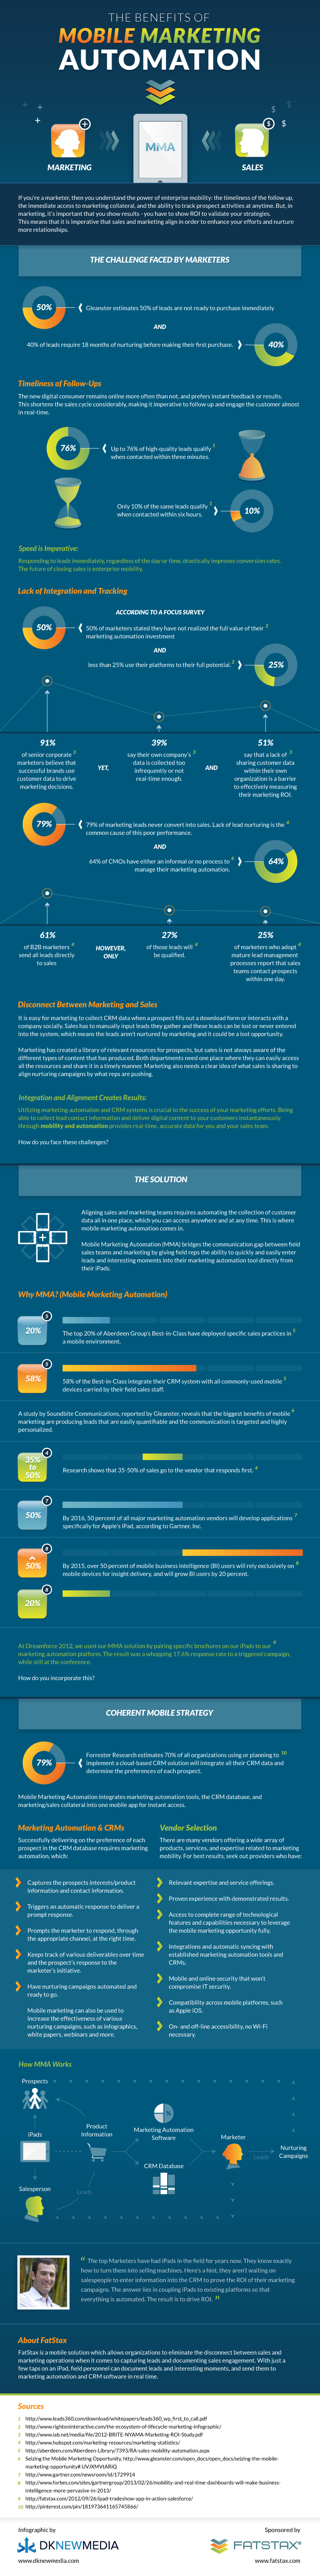 The Benefits of Mobile Marketing Automation Infographic